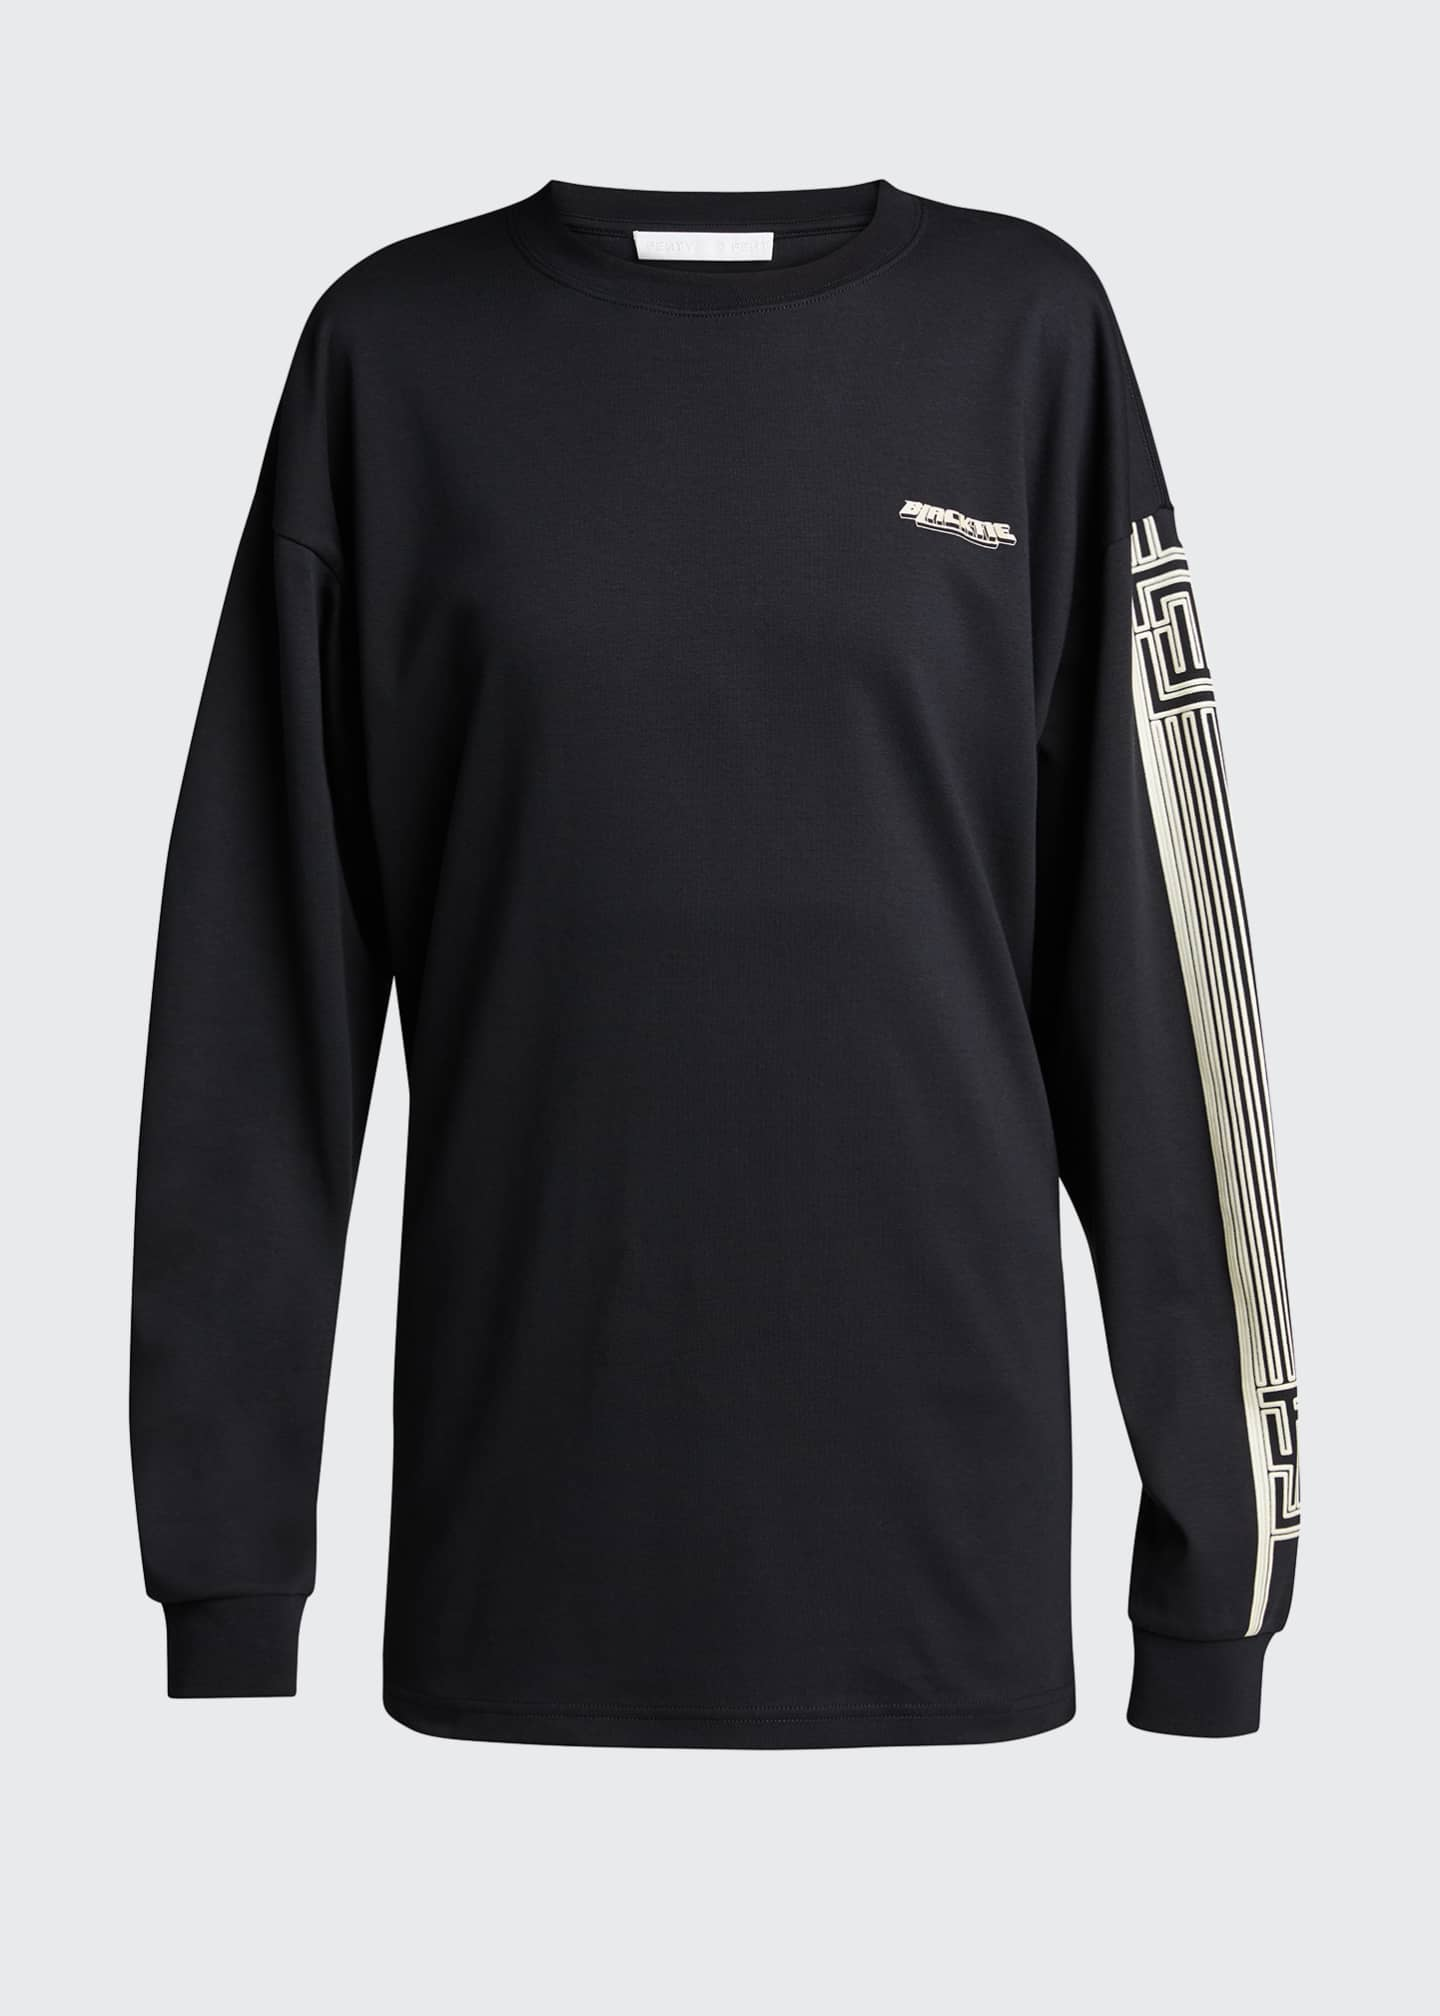 Image 5 of 5: Long-Sleeve Graphic T-Shirt